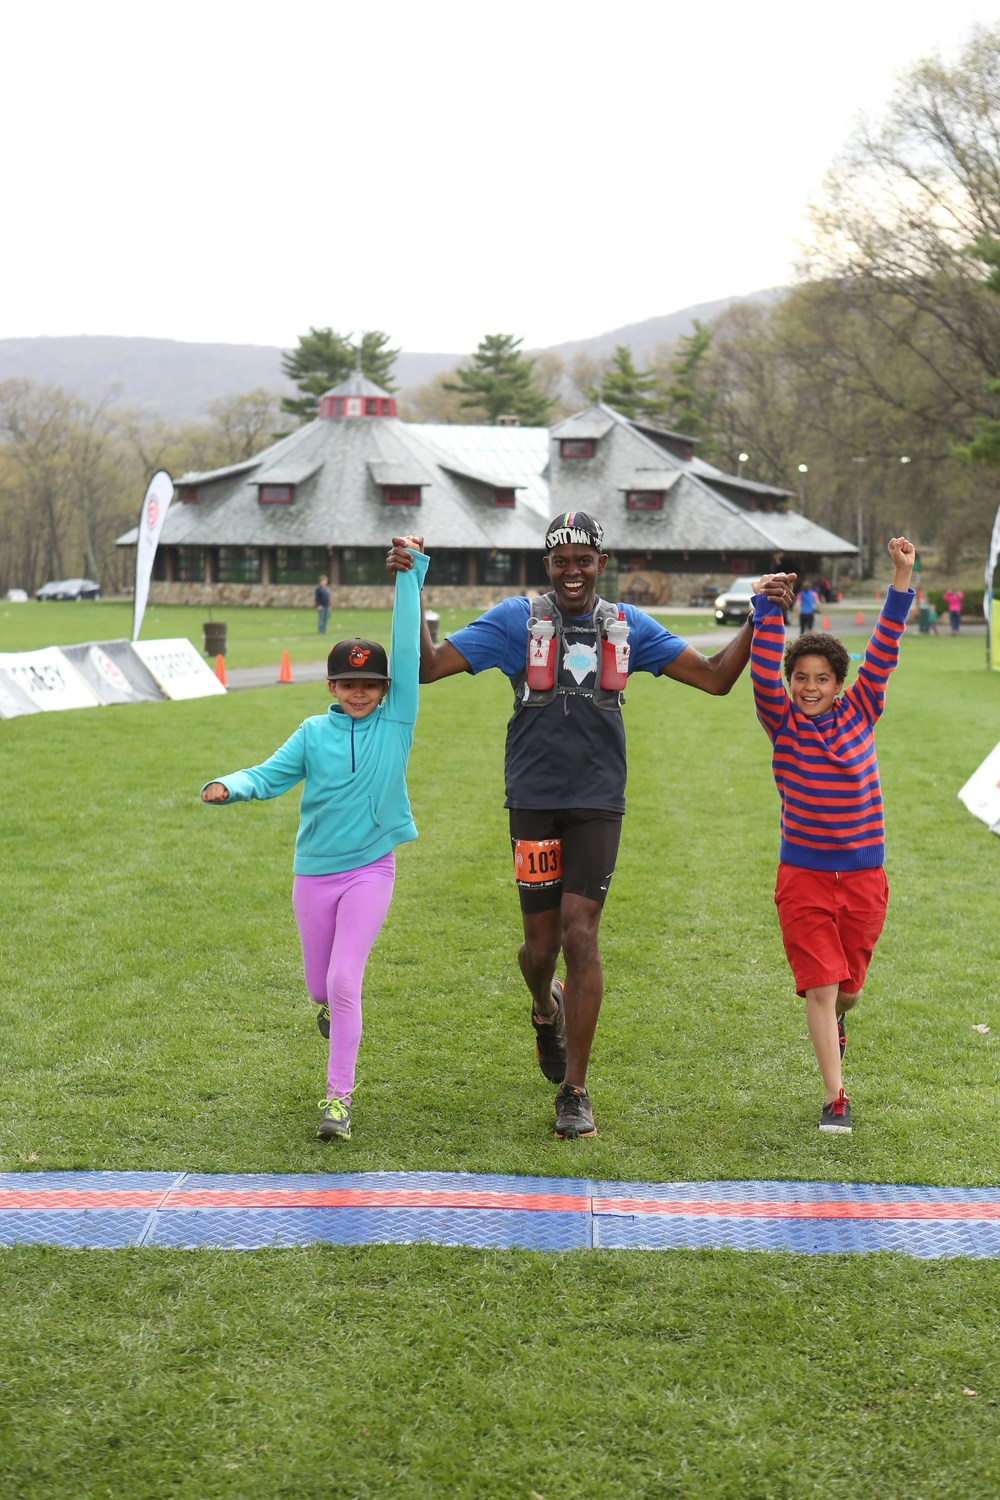 Here's Rudy finishing the TNF Bear Mountain 50 miler all smiles with his kids!! You can't ask for a better finisher's photo! Congrats, Rudy!